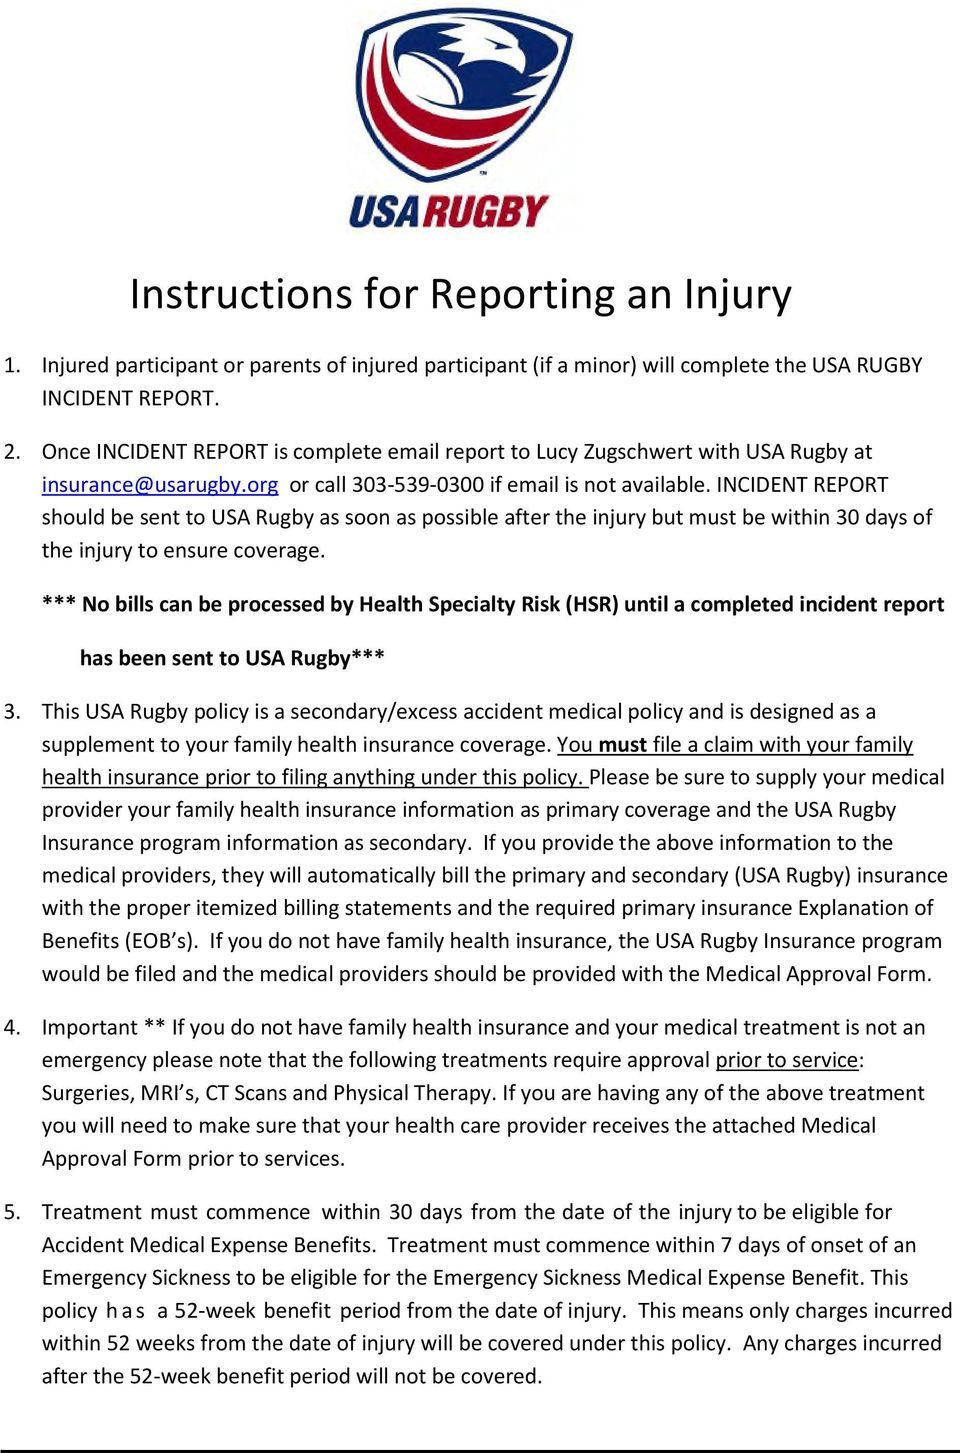 INCIDENT REPORT should be sent to USA Rugby as soon as possible after the injury but must be within 30 days of the injury to ensure coverage.